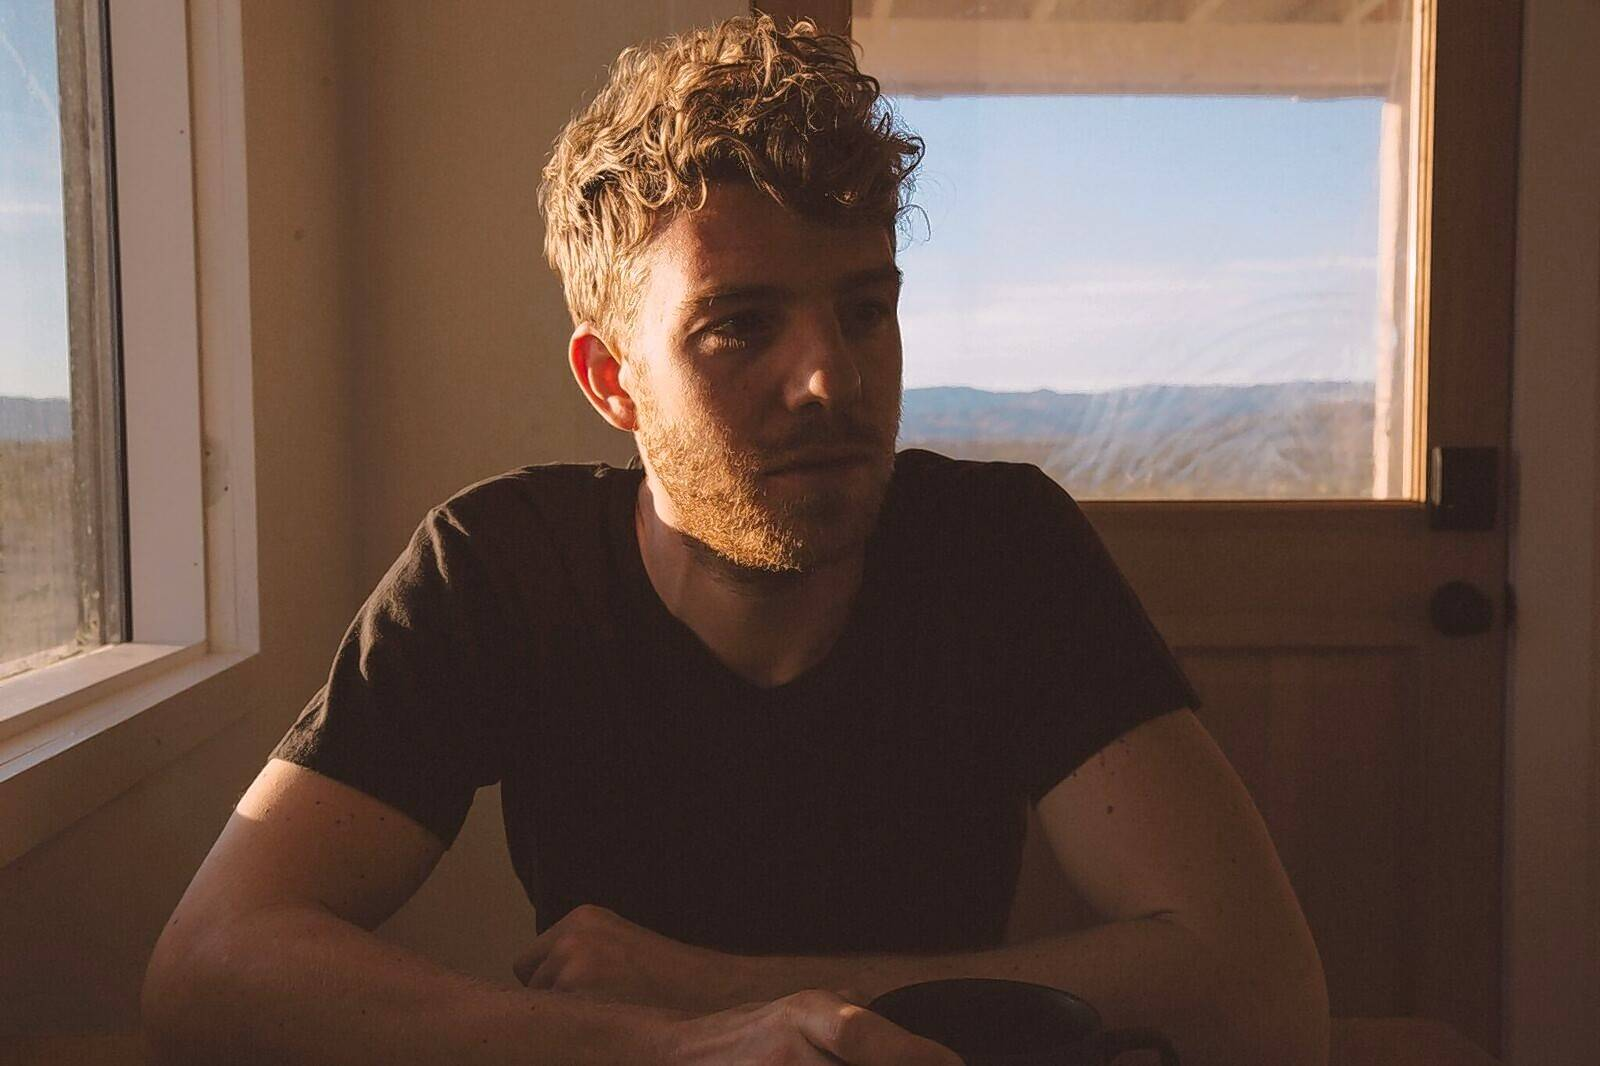 A second show featuring Chicago singer-songwriter Andrew Belle has been announced for Oct. 26 at Hey Nonny in Arlington Heights. Belle will perform at 7 p.m. and 9:30 p.m.